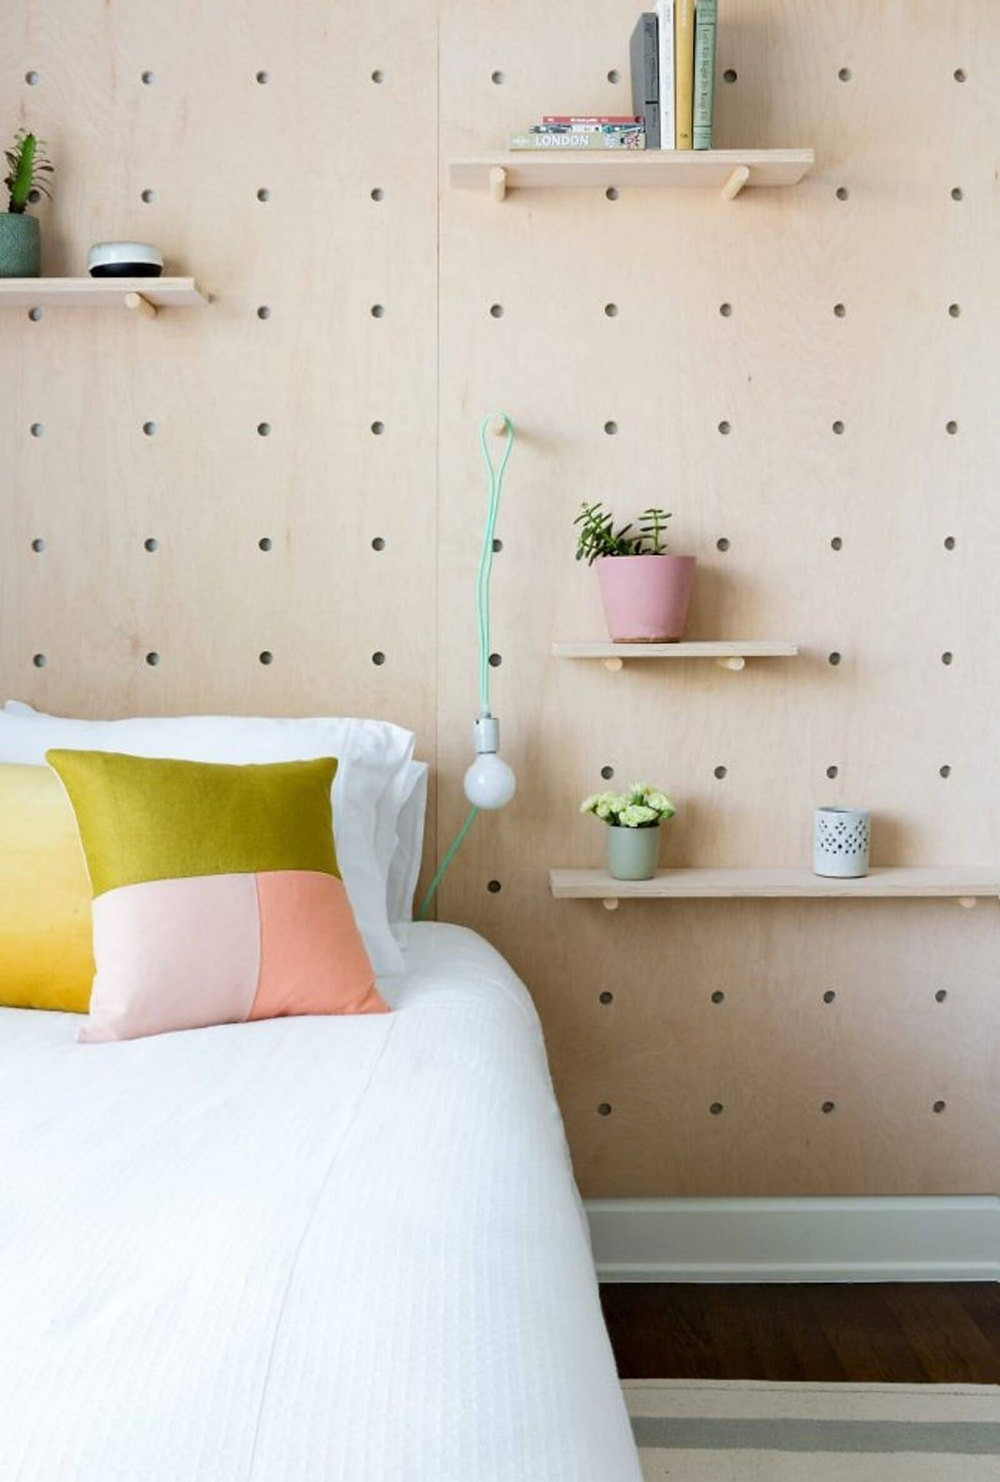 A close up of part of a bed with a large light wood peg board behind it. On the pegboard are multiple floating shelves with pot plants, books and knick knacks on them. The bed has white sheets, pillows and doona with colourful green and pink cushions.